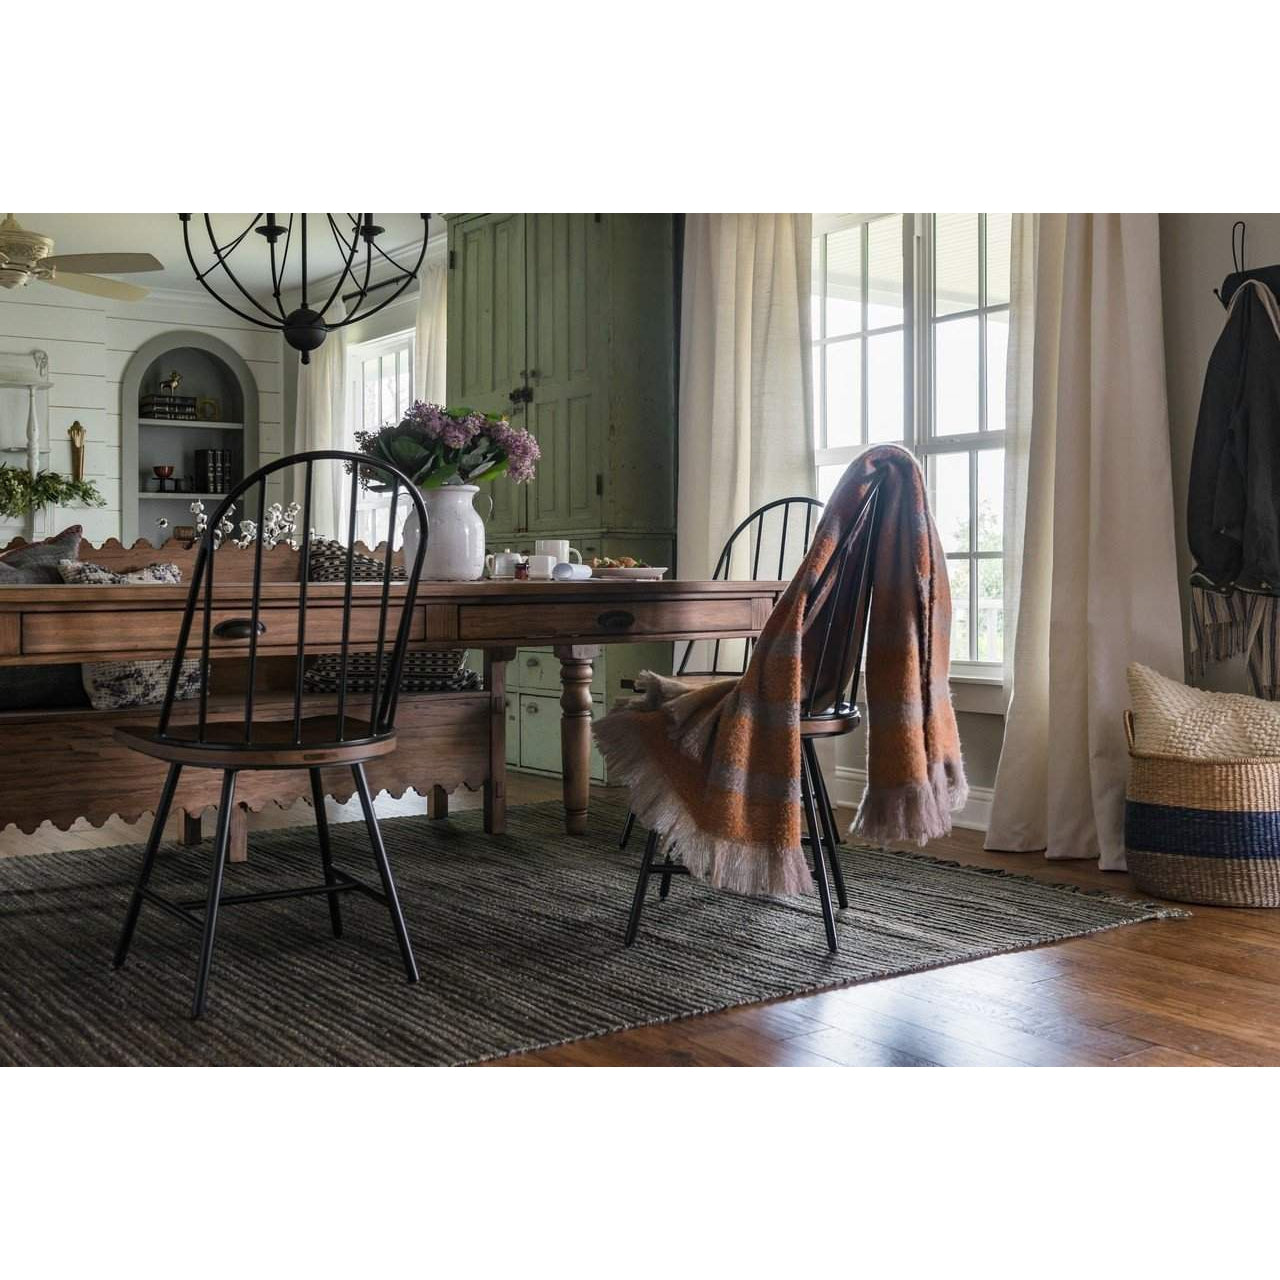 Joanna Gaines Rugs Of Magnolia Home Rug Collection Storm